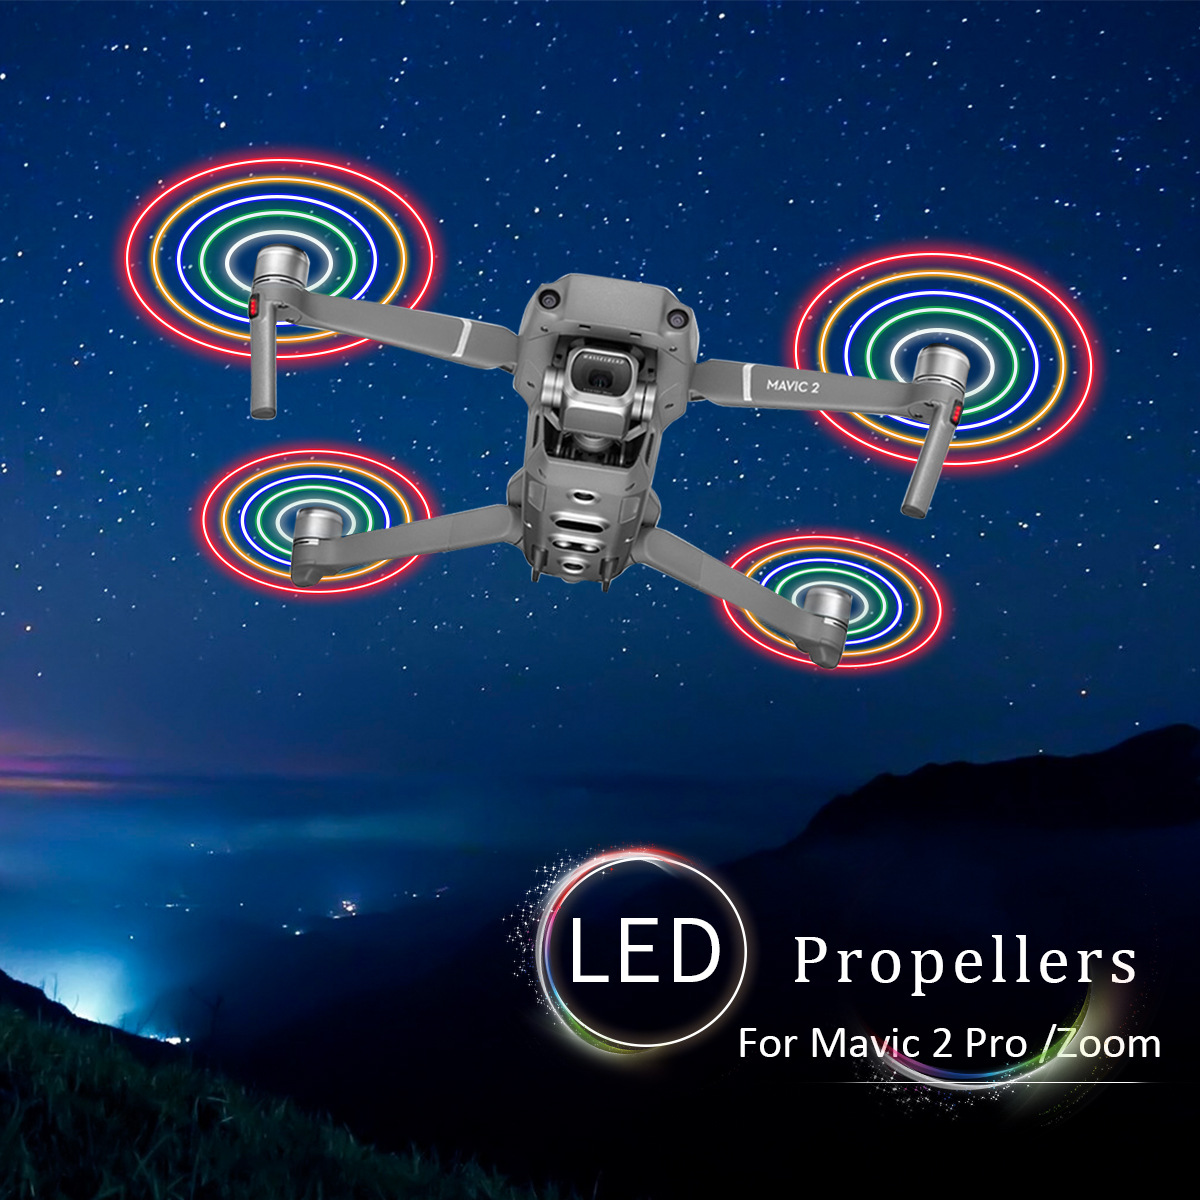 Startrc Flash Circle Propeller LED Light Shining Blade Applicable DJI Unmanned Aerial Vehicle YULAI 2 Mavic 2 Accessories